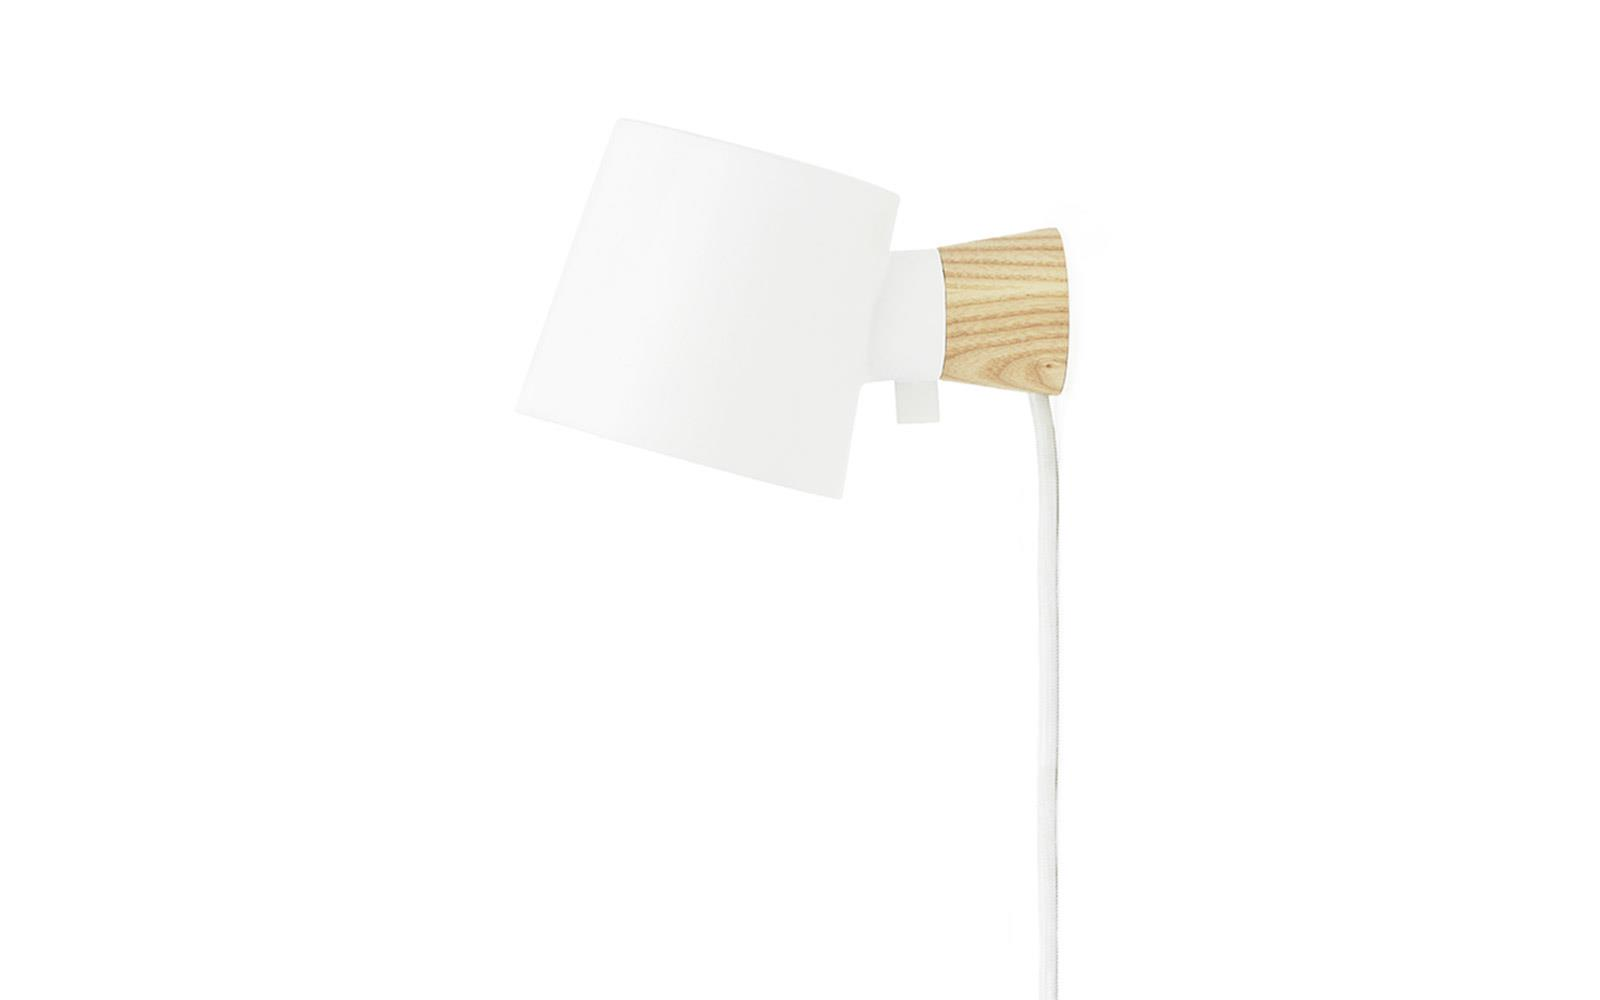 Rise Wall Lamp – In all simplicity